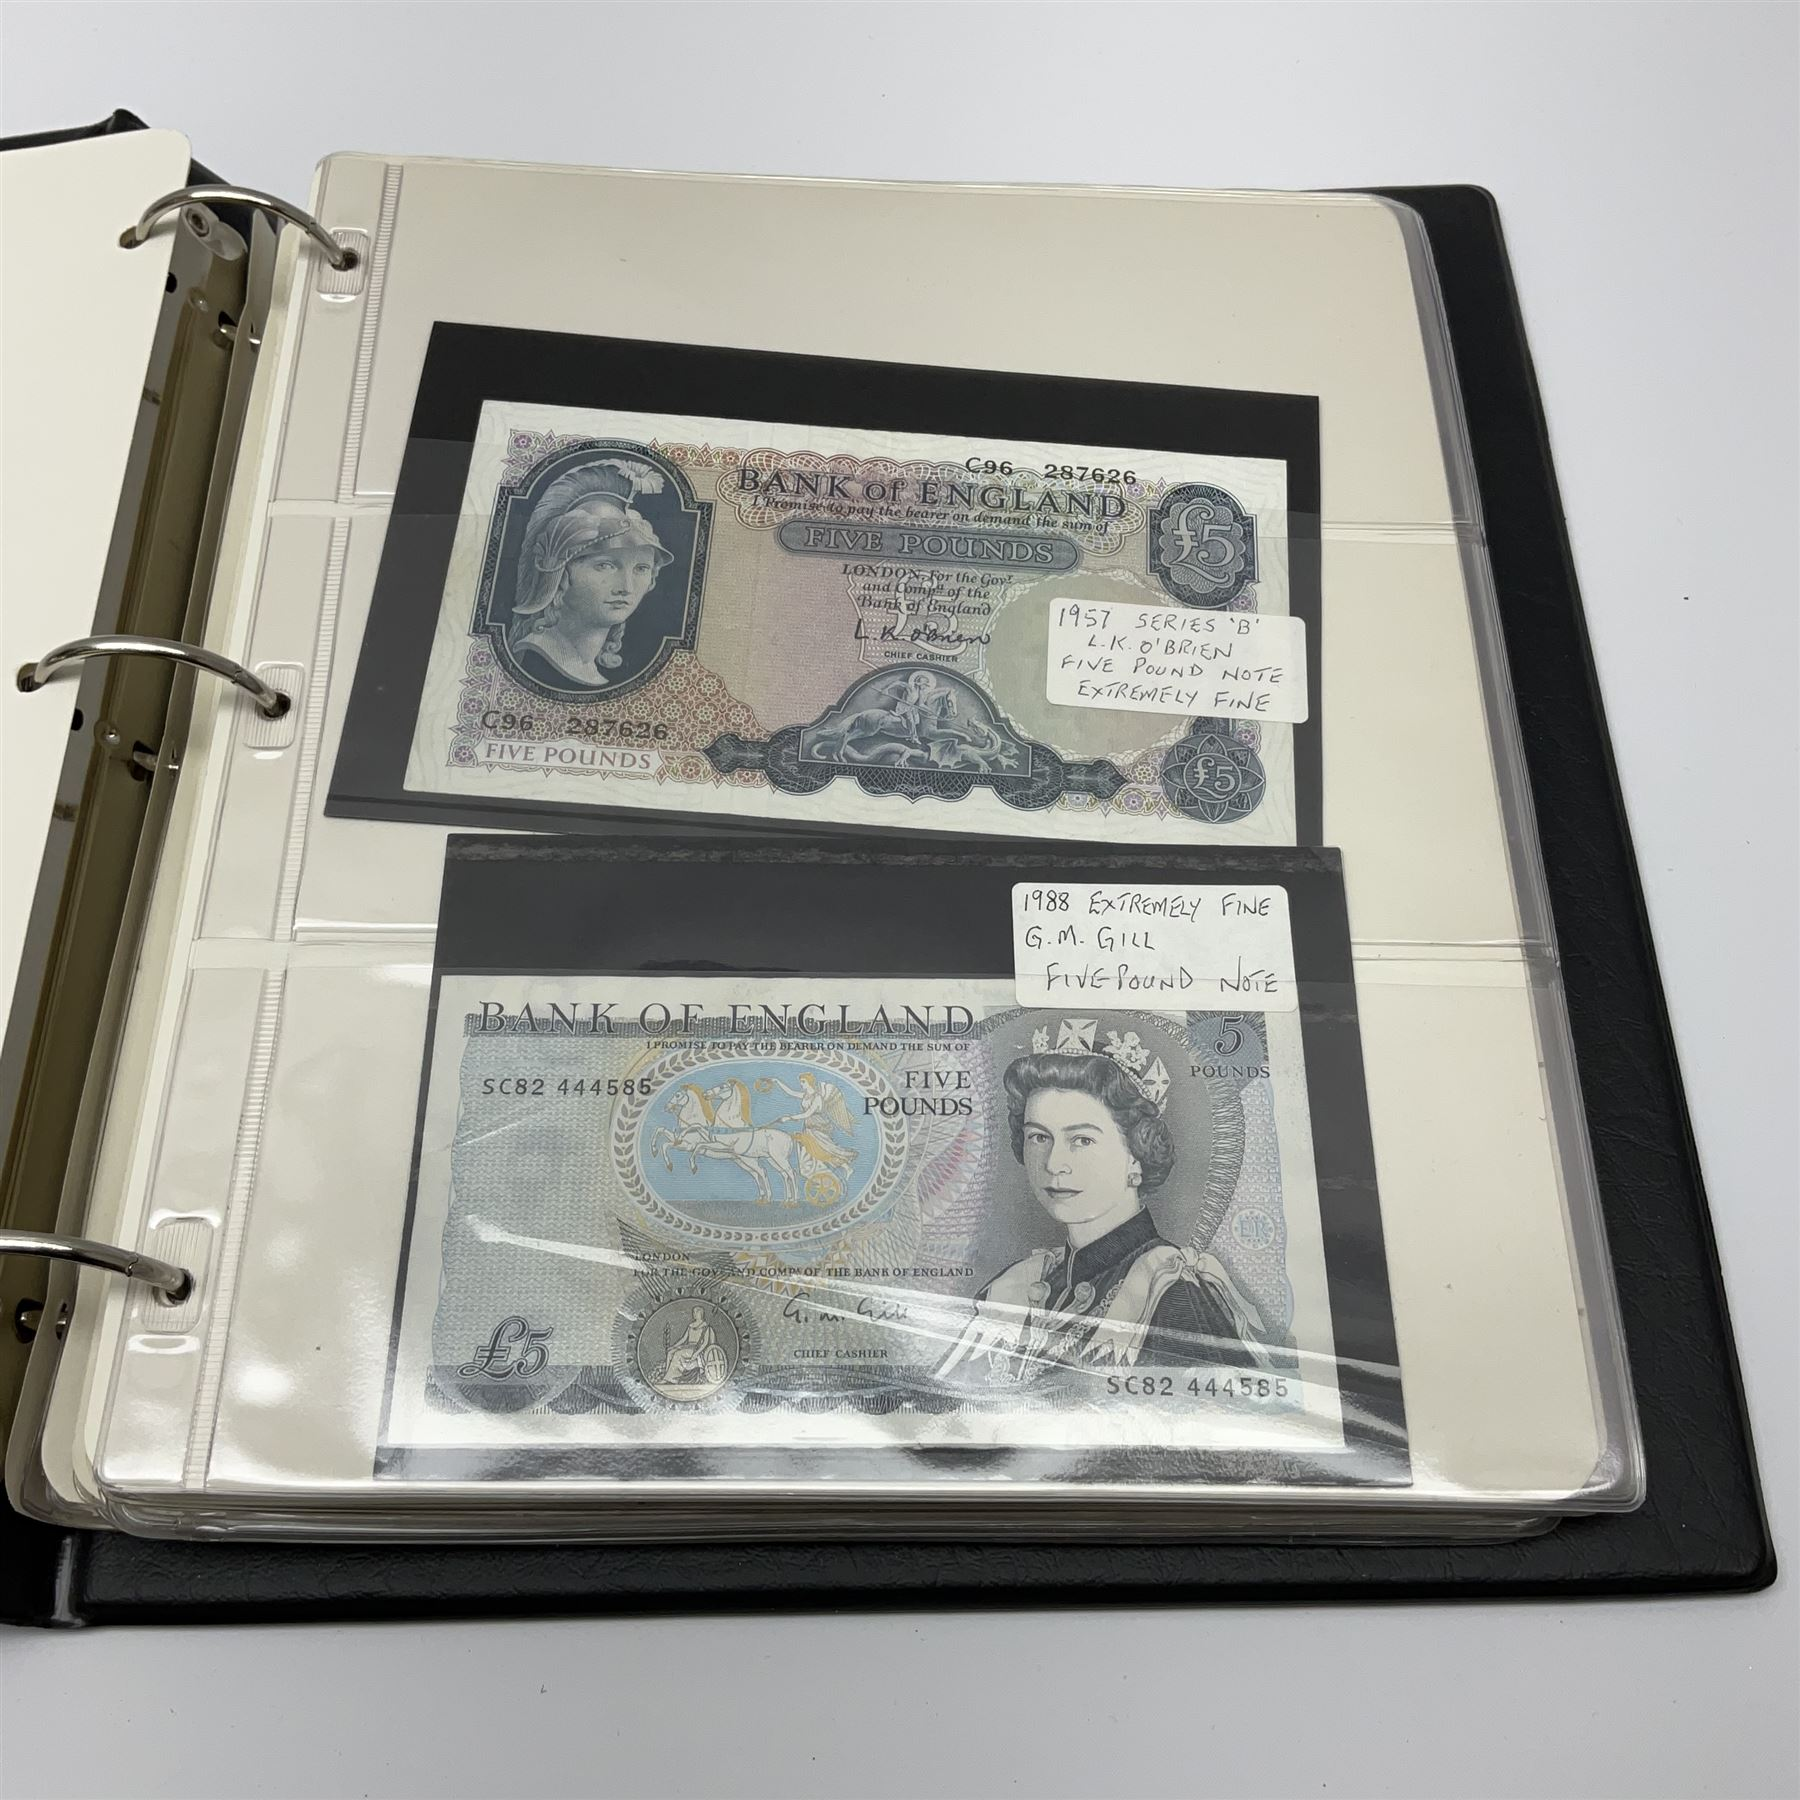 Album of mostly Great British banknotes including Peppiatt emergency issue one pound 'E57E' - Image 15 of 19